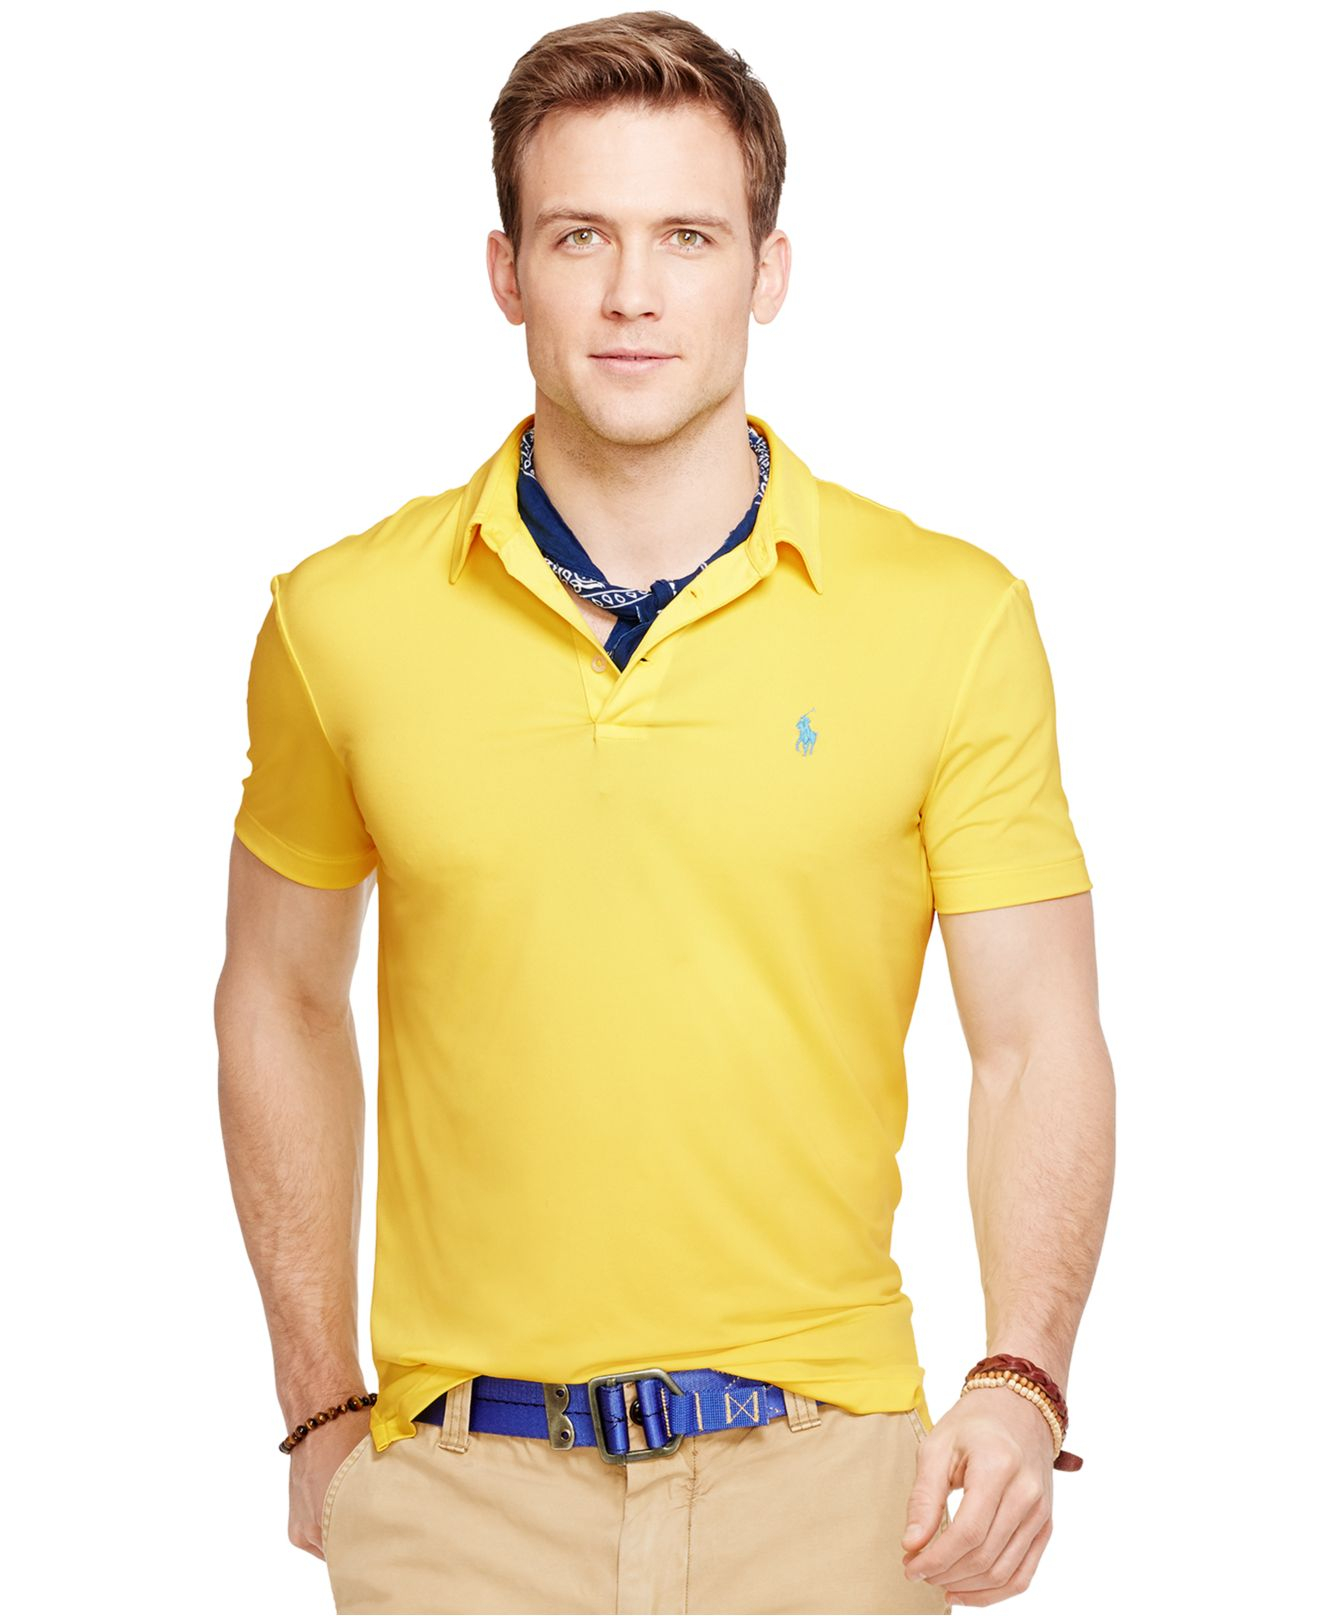 9f267610adbcc Lyst - Polo Ralph Lauren Performance Polo Shirt in Yellow for Men